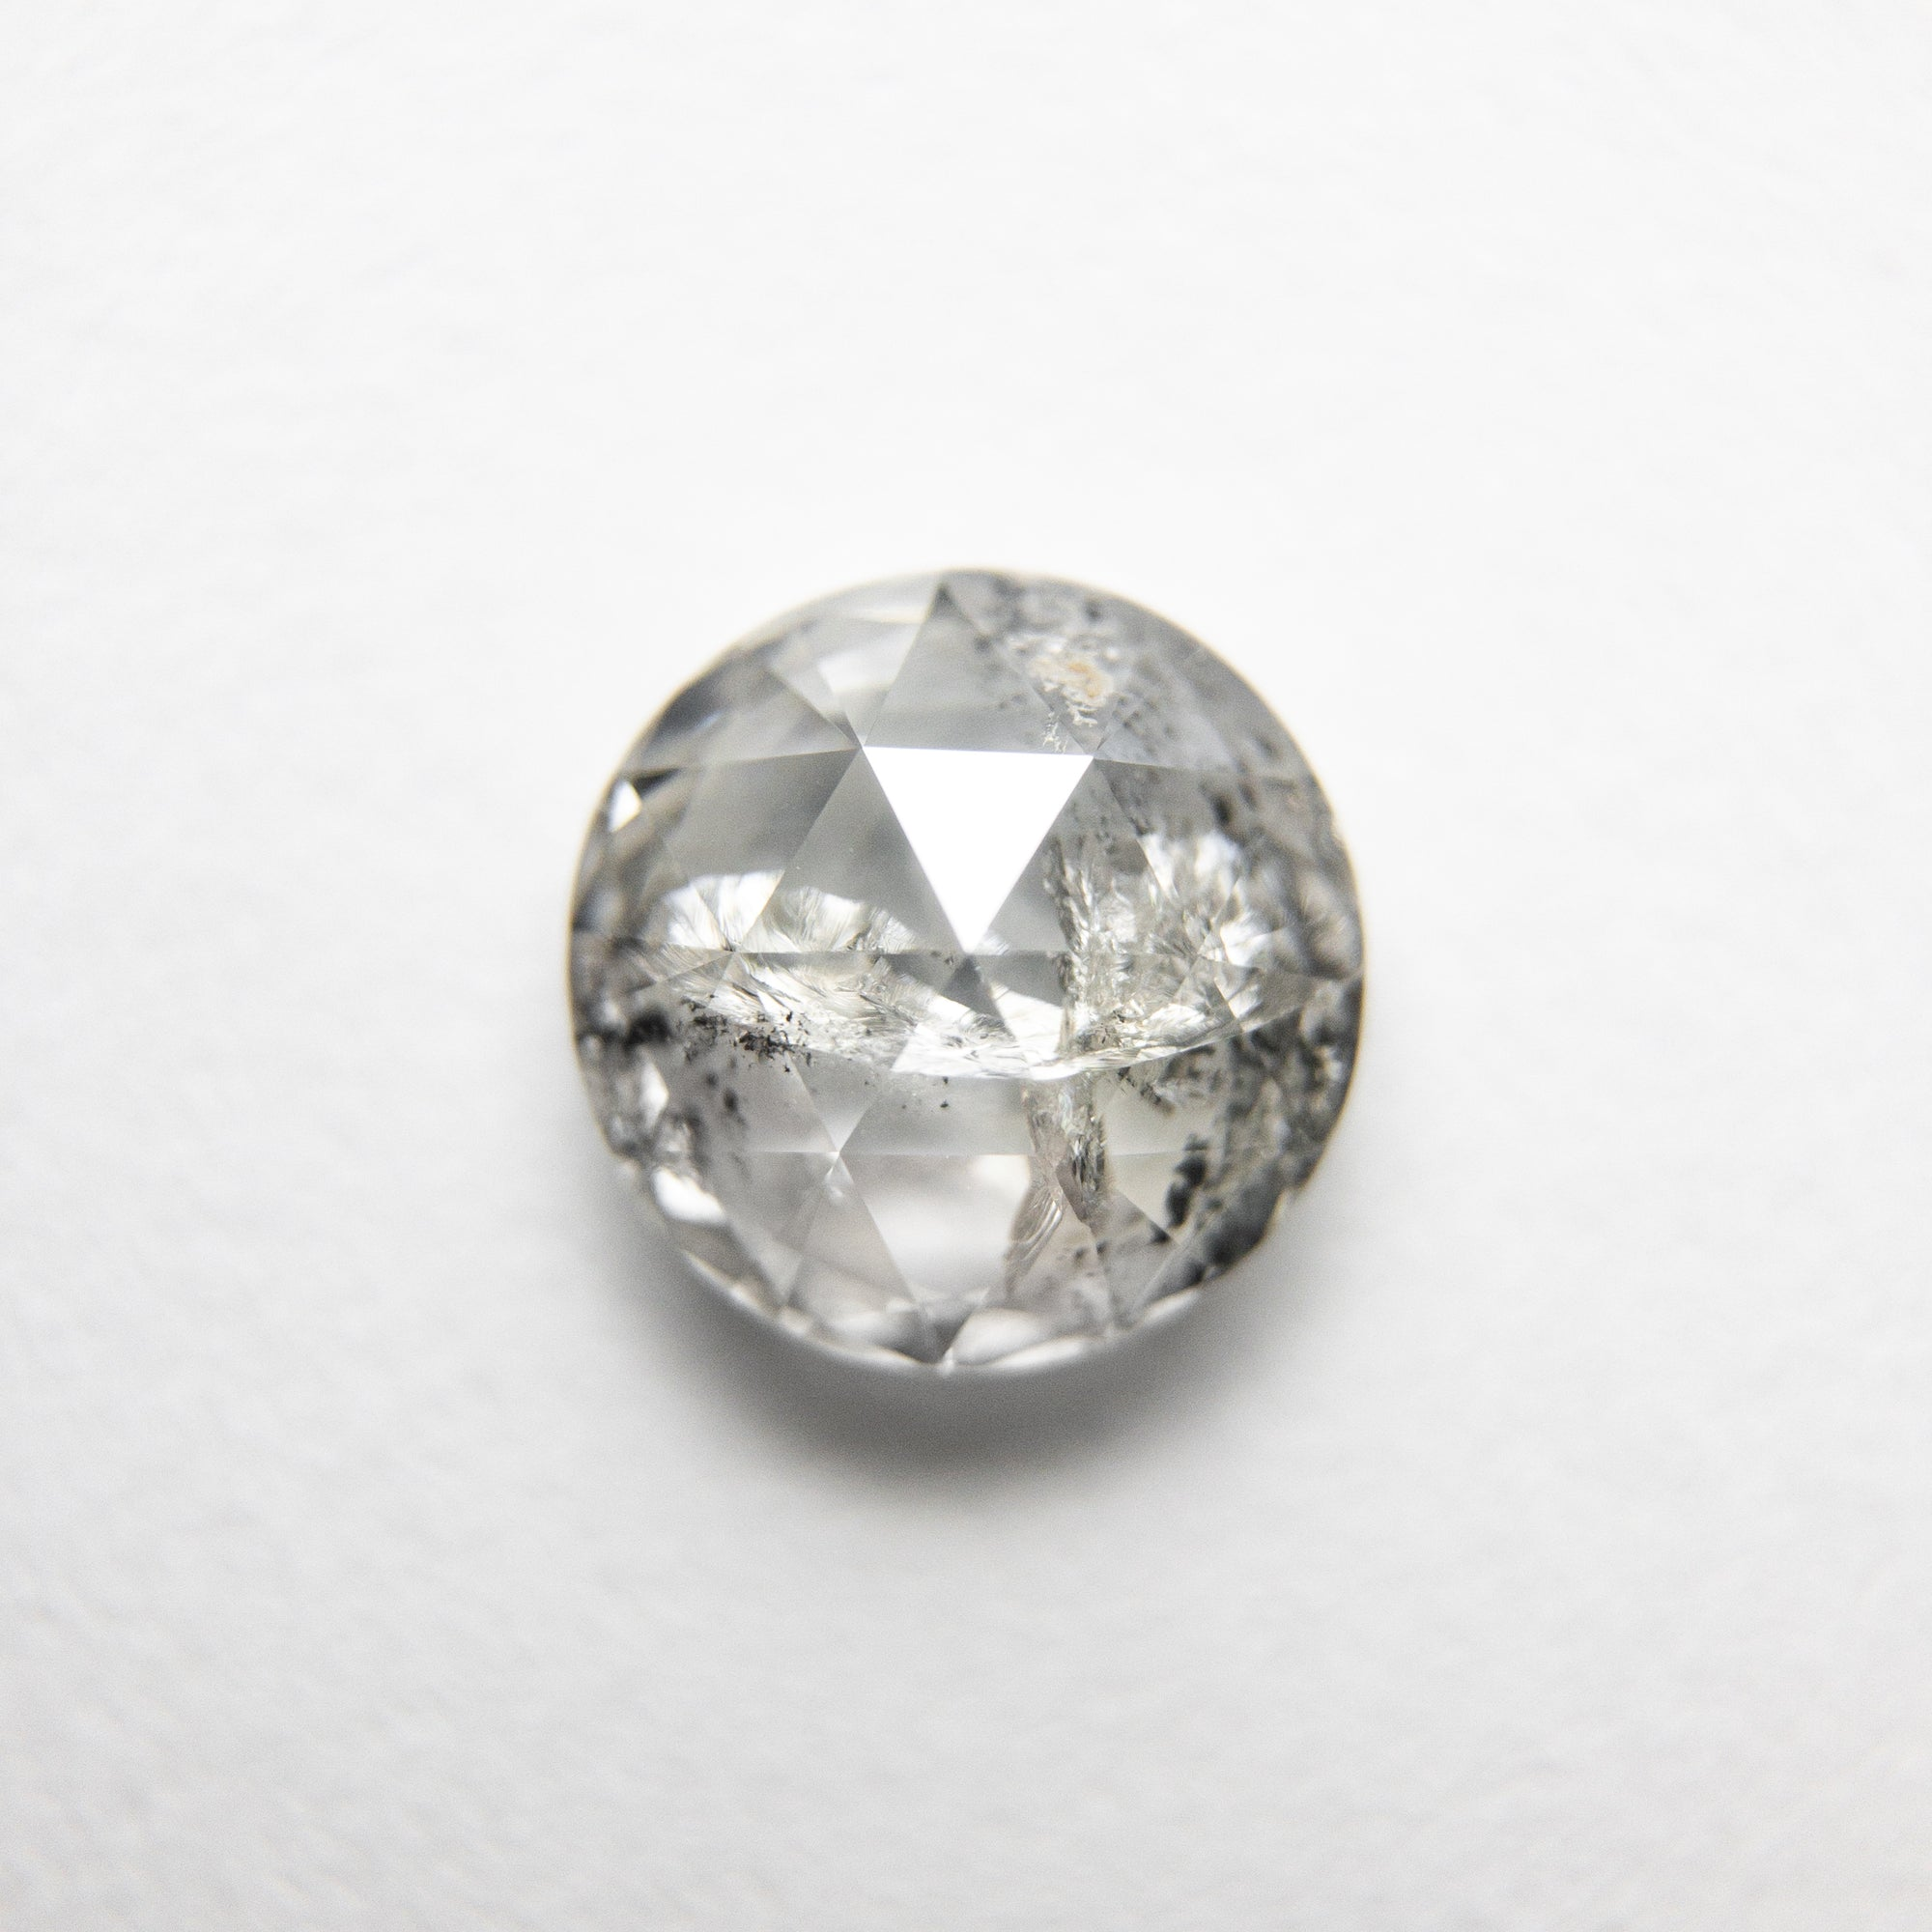 1.05ct 6.74x6.67x3.10mm Round Double Cut 18094-29